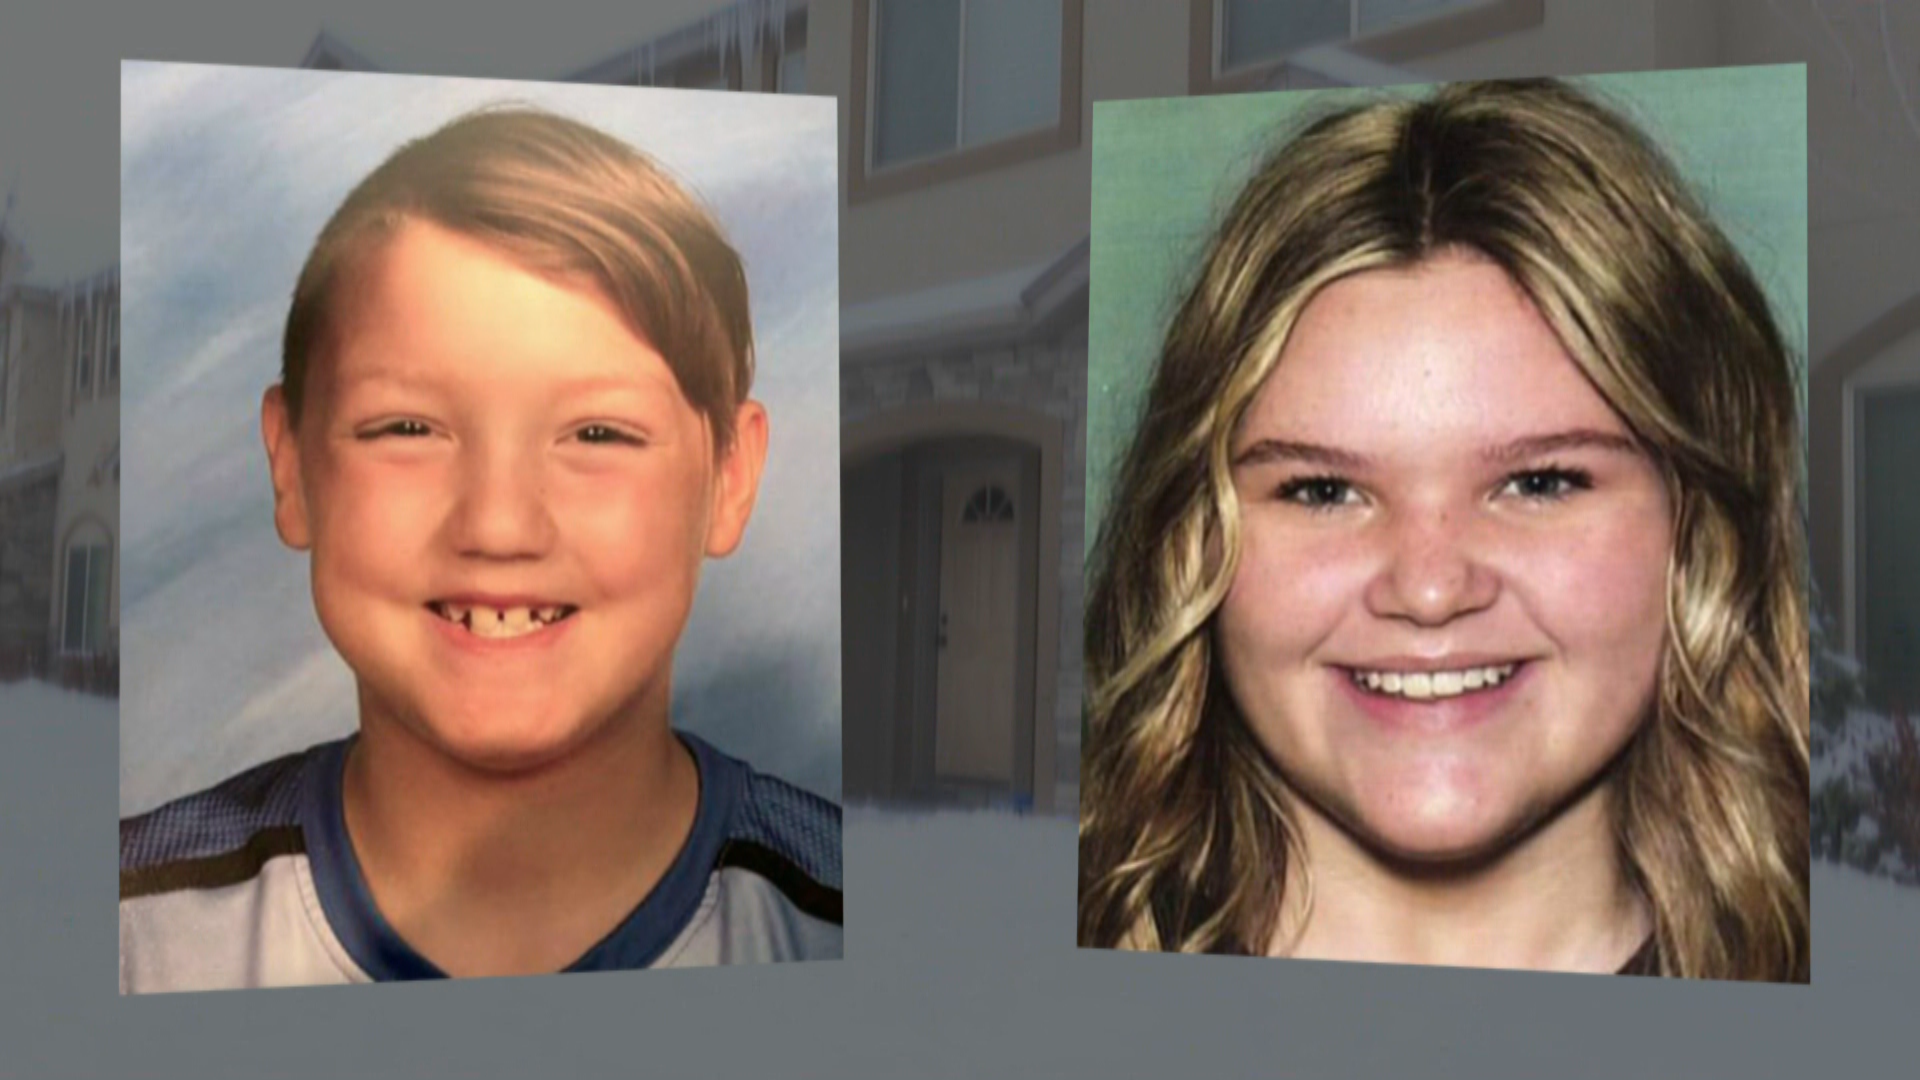 Attorneys for Lori Vallow's niece are denying claims she knows where her aunt's missing children are. (Photo: KUTV)